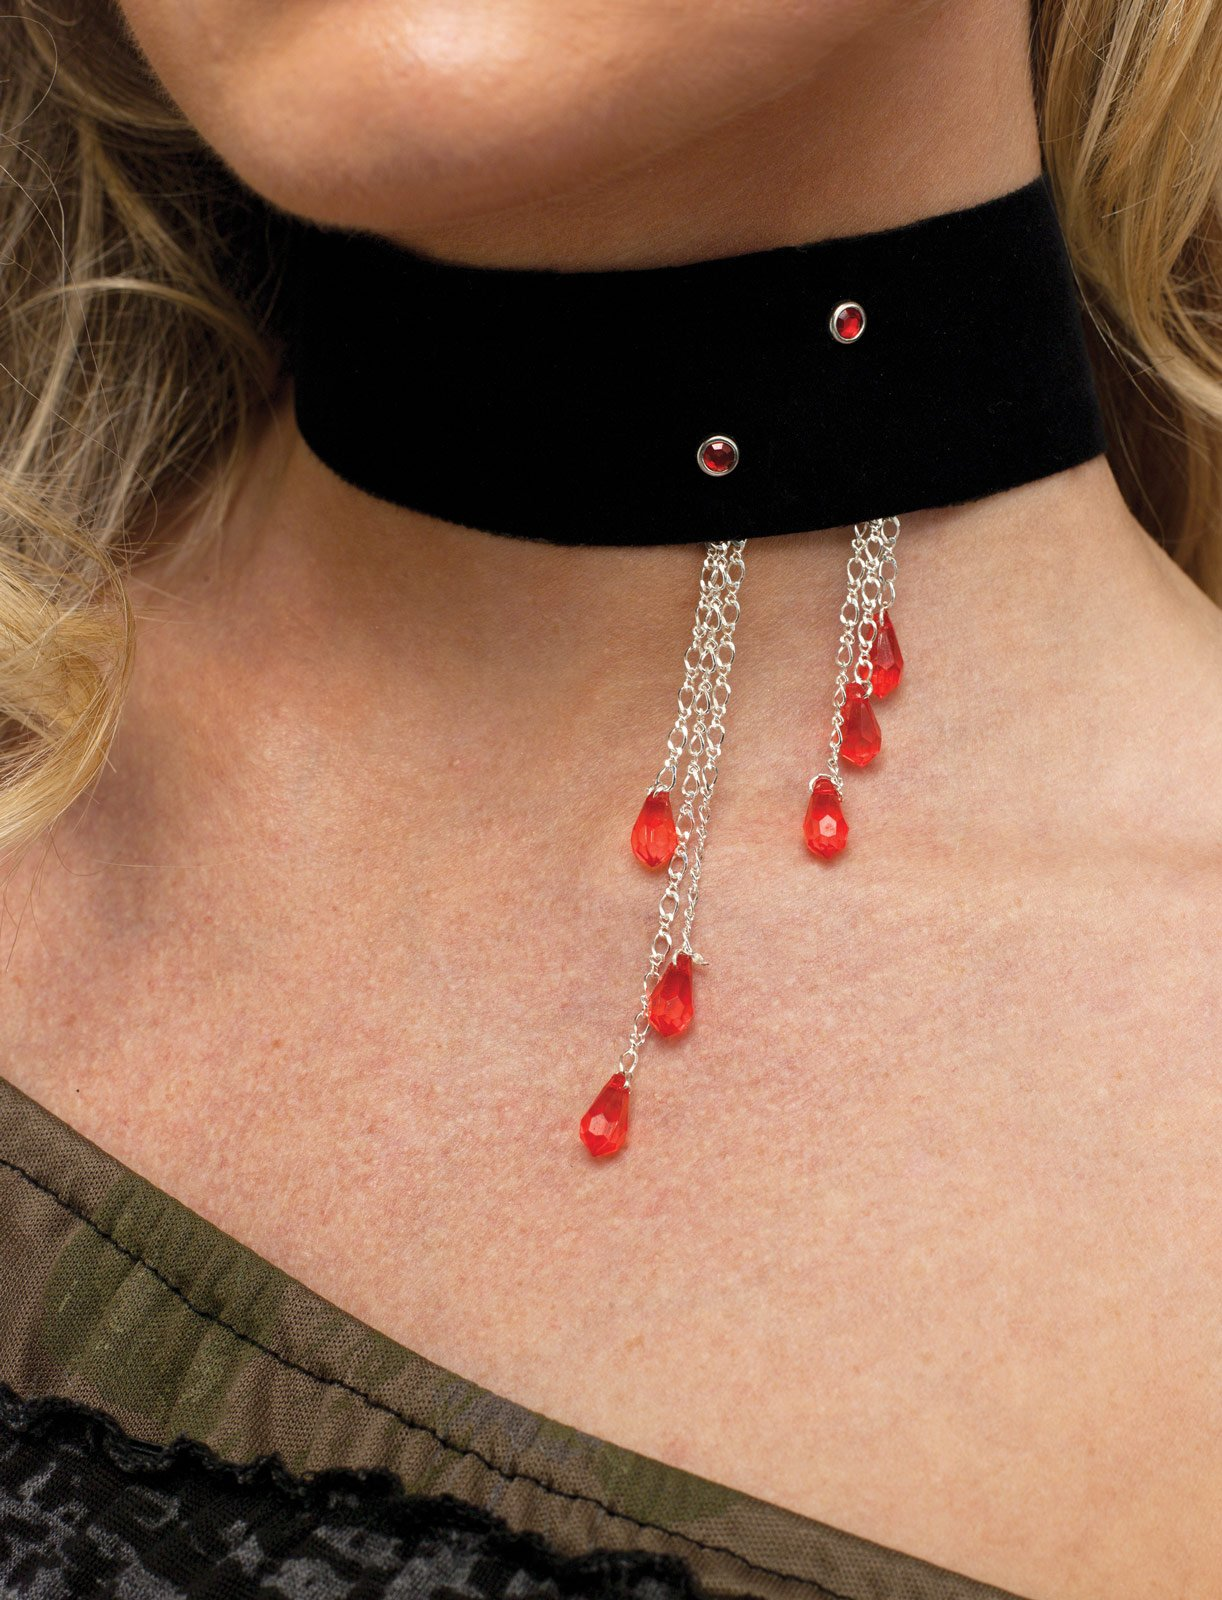 Vampiress Blood Drop Choker (Adult)